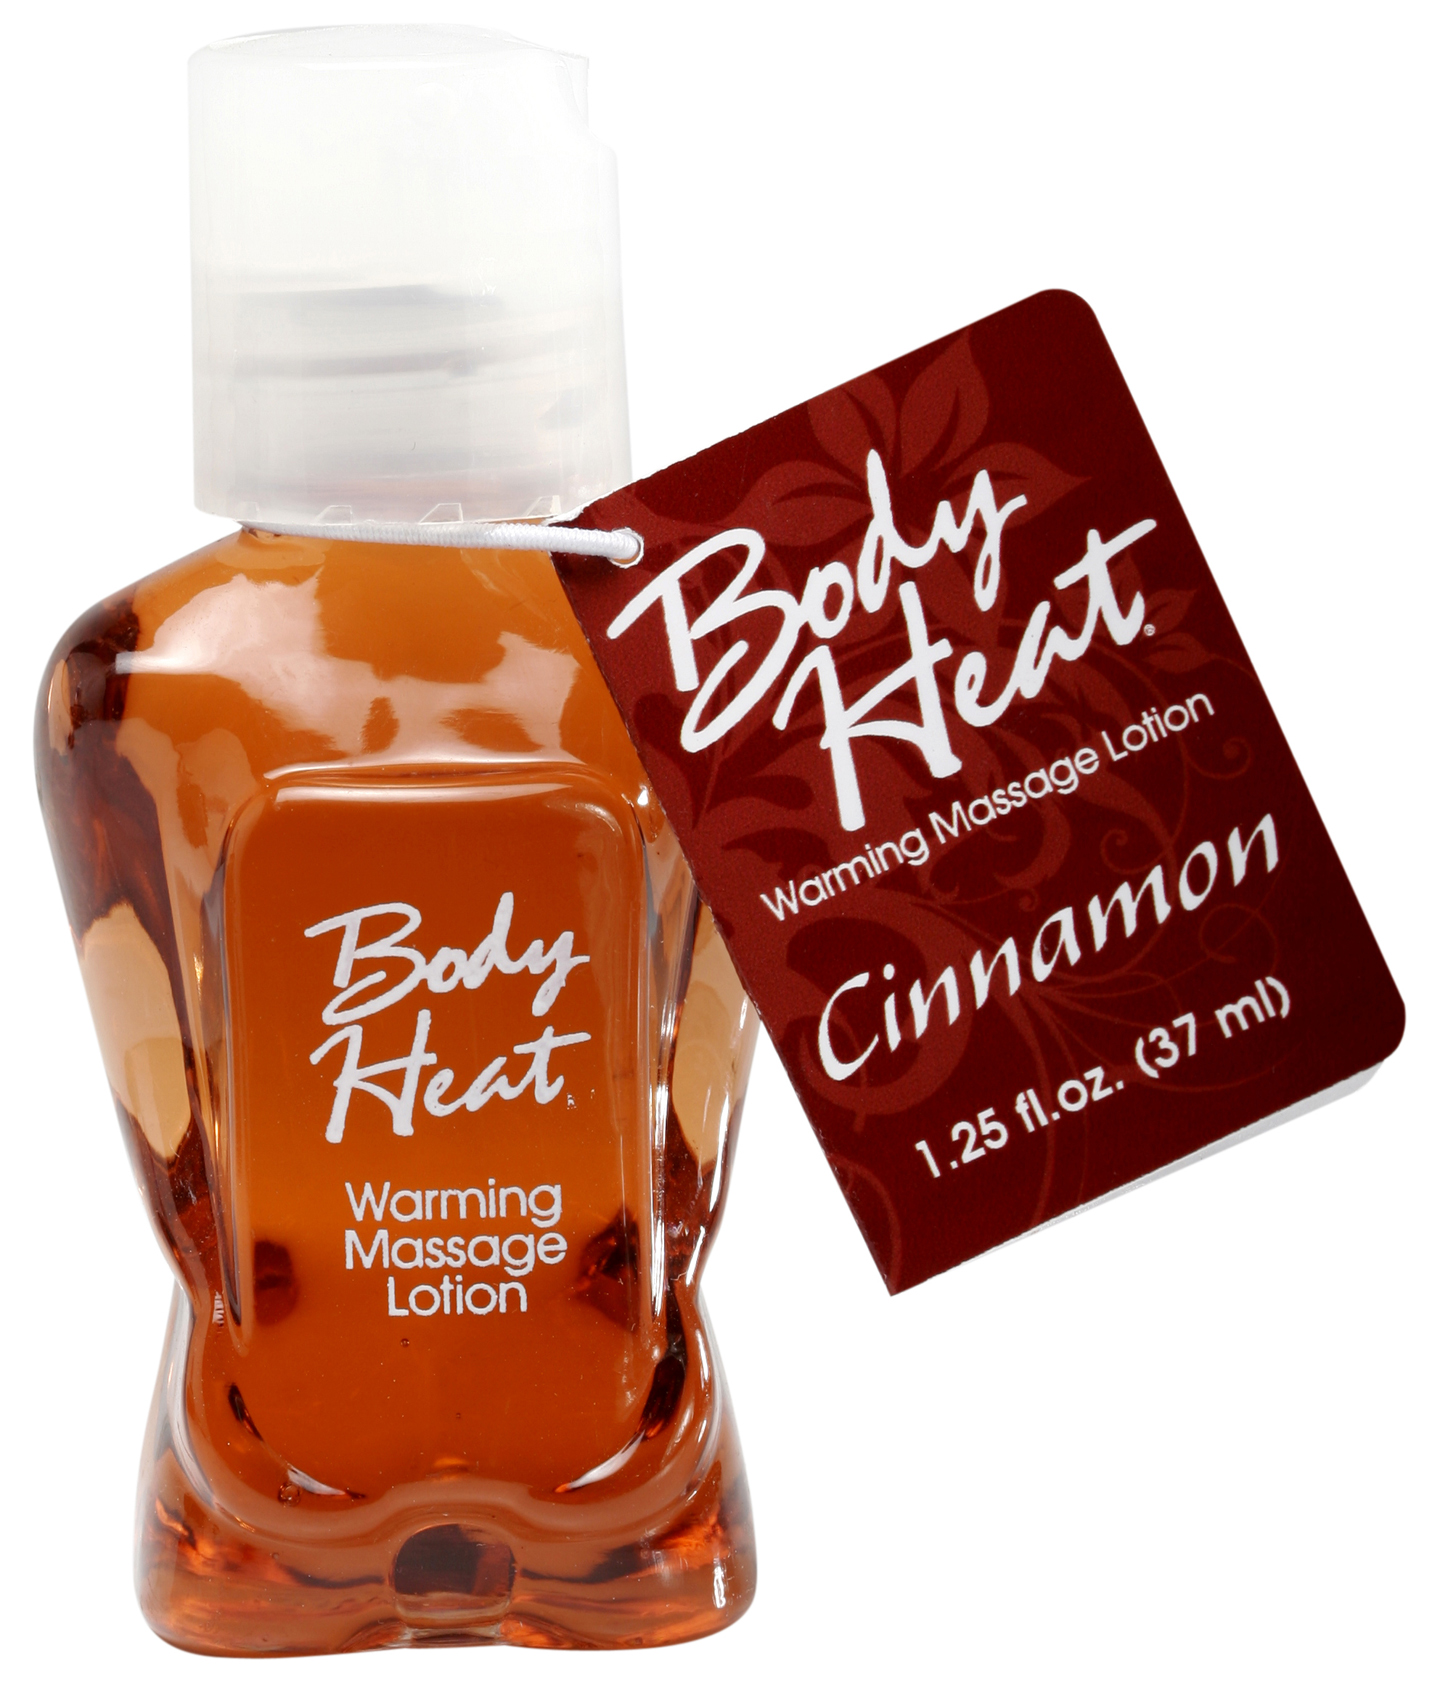 BODY HEAT WARMING MASSAGE LOTION 1.25 OZ CINNAMON